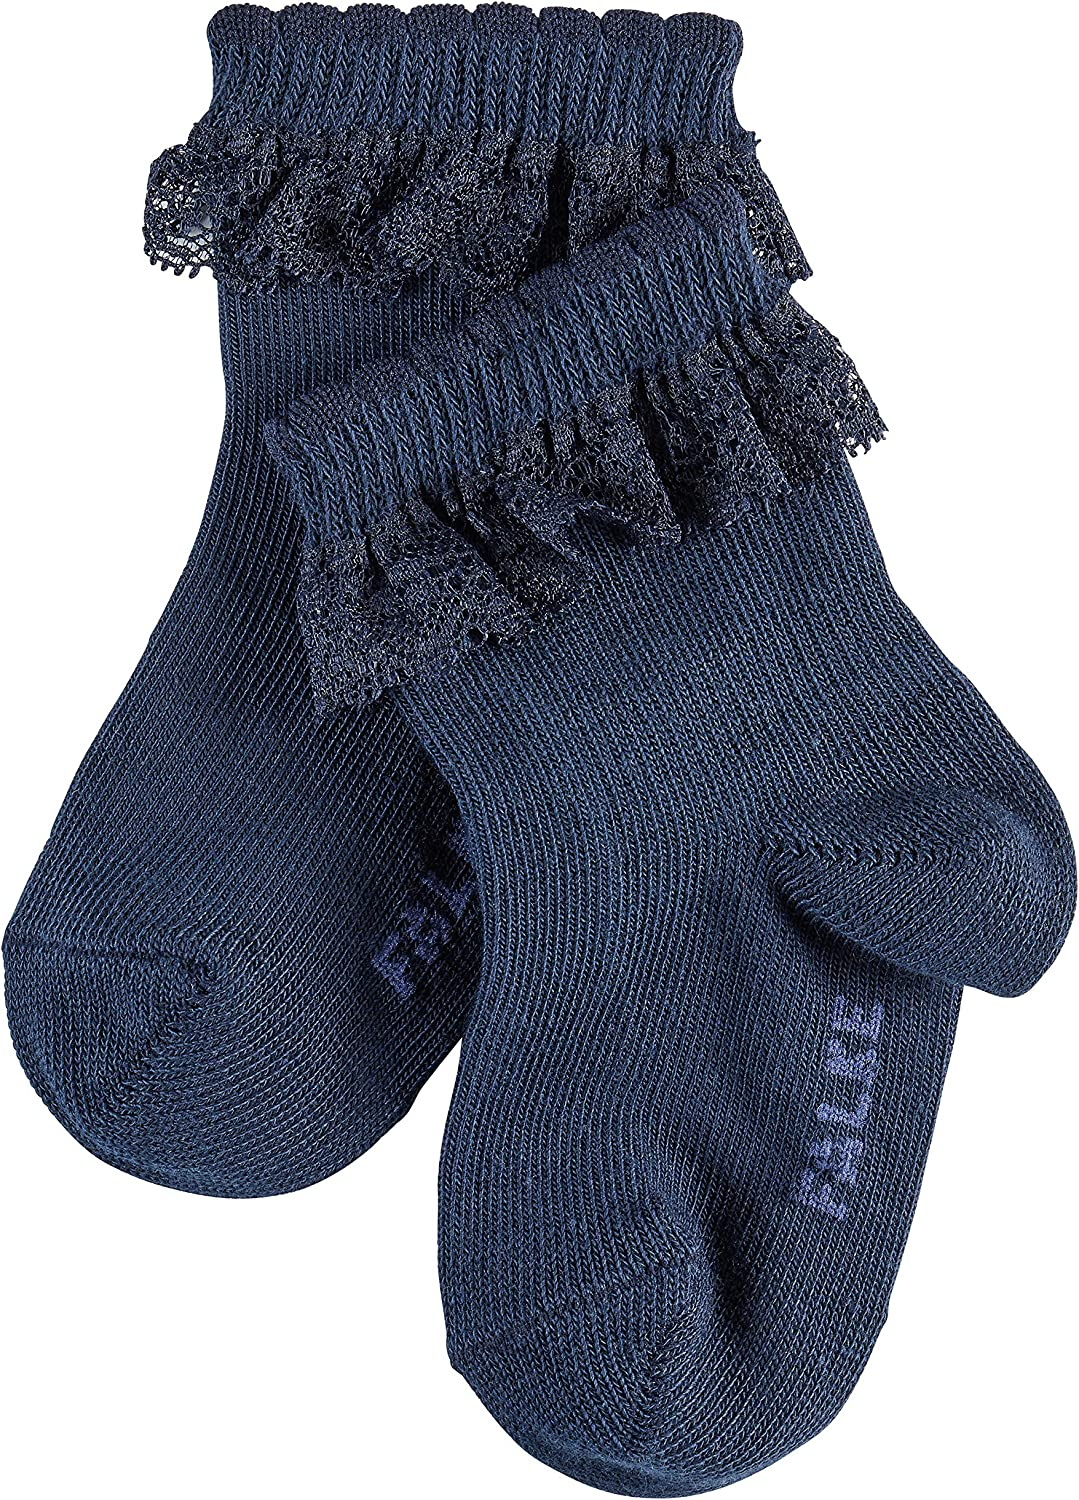 Cotton Blend 1 Pair ideal for festive occasions Navy or Pink In White FALKE Baby Romantic Lace Socks Sizes 1-18 months Skin friendly easy care